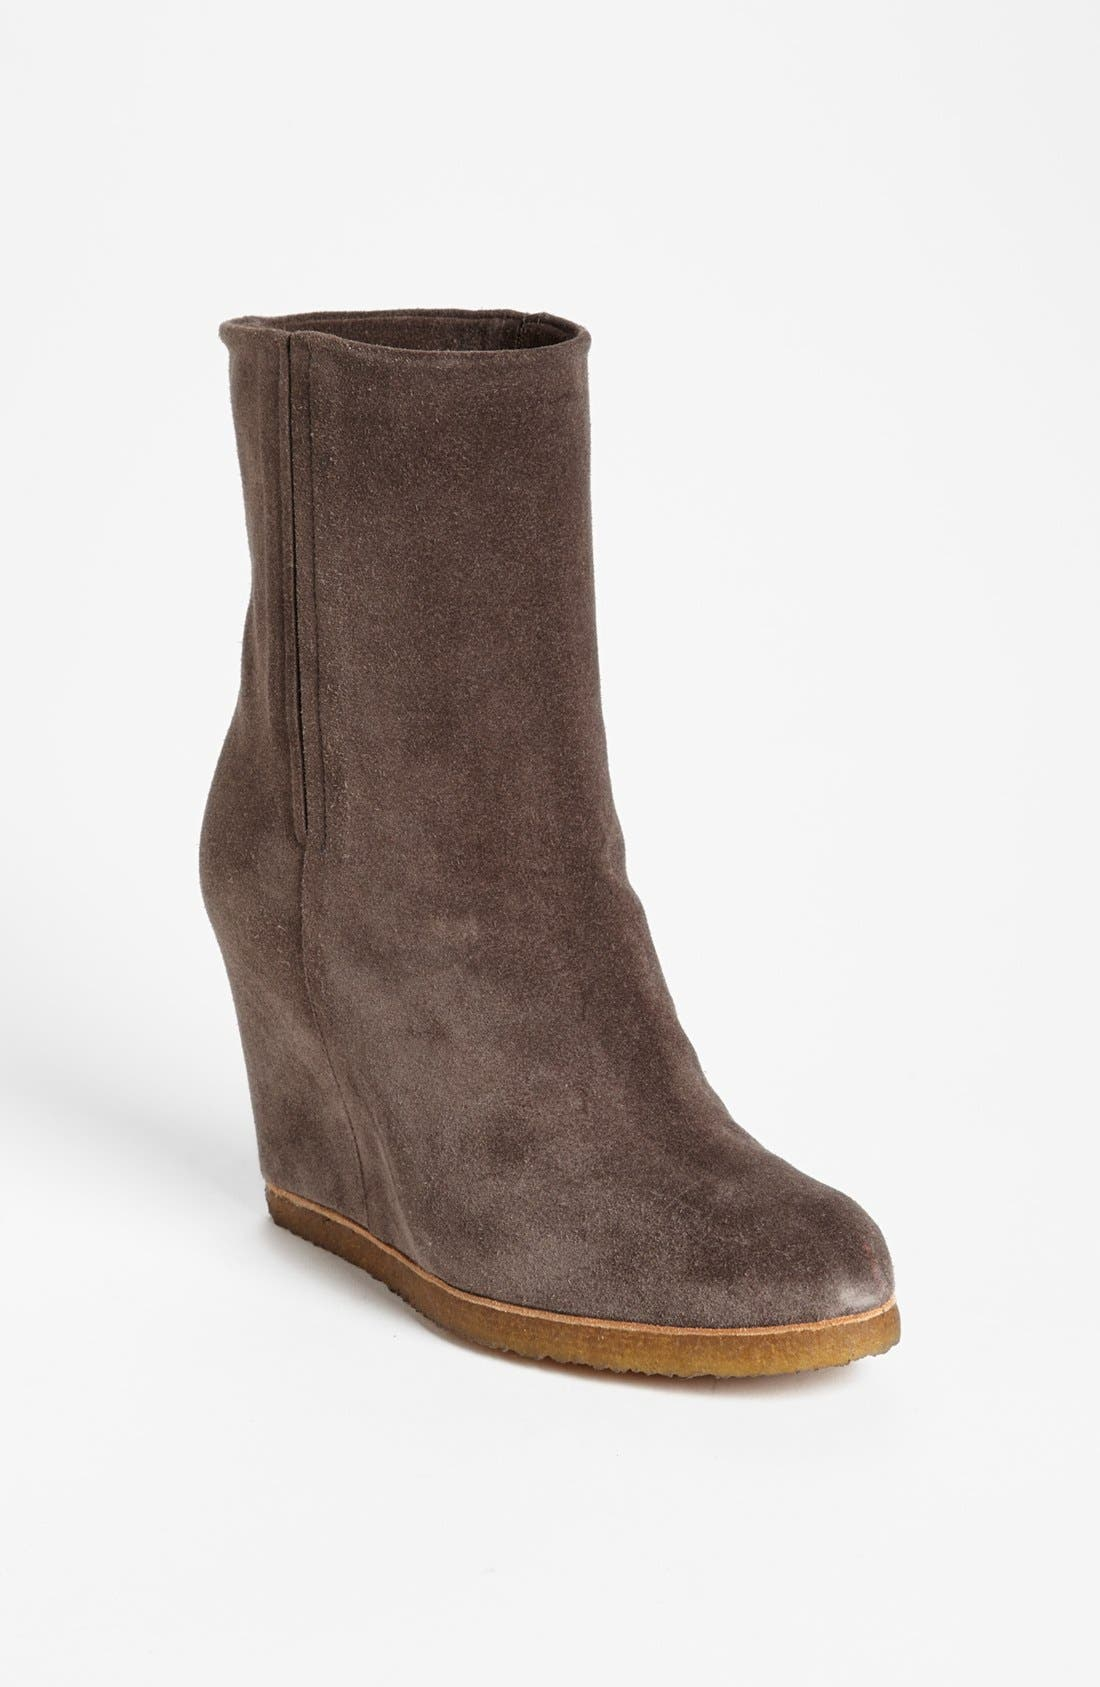 Alternate Image 1 Selected - Stuart Weitzman 'Bootscout' Boot